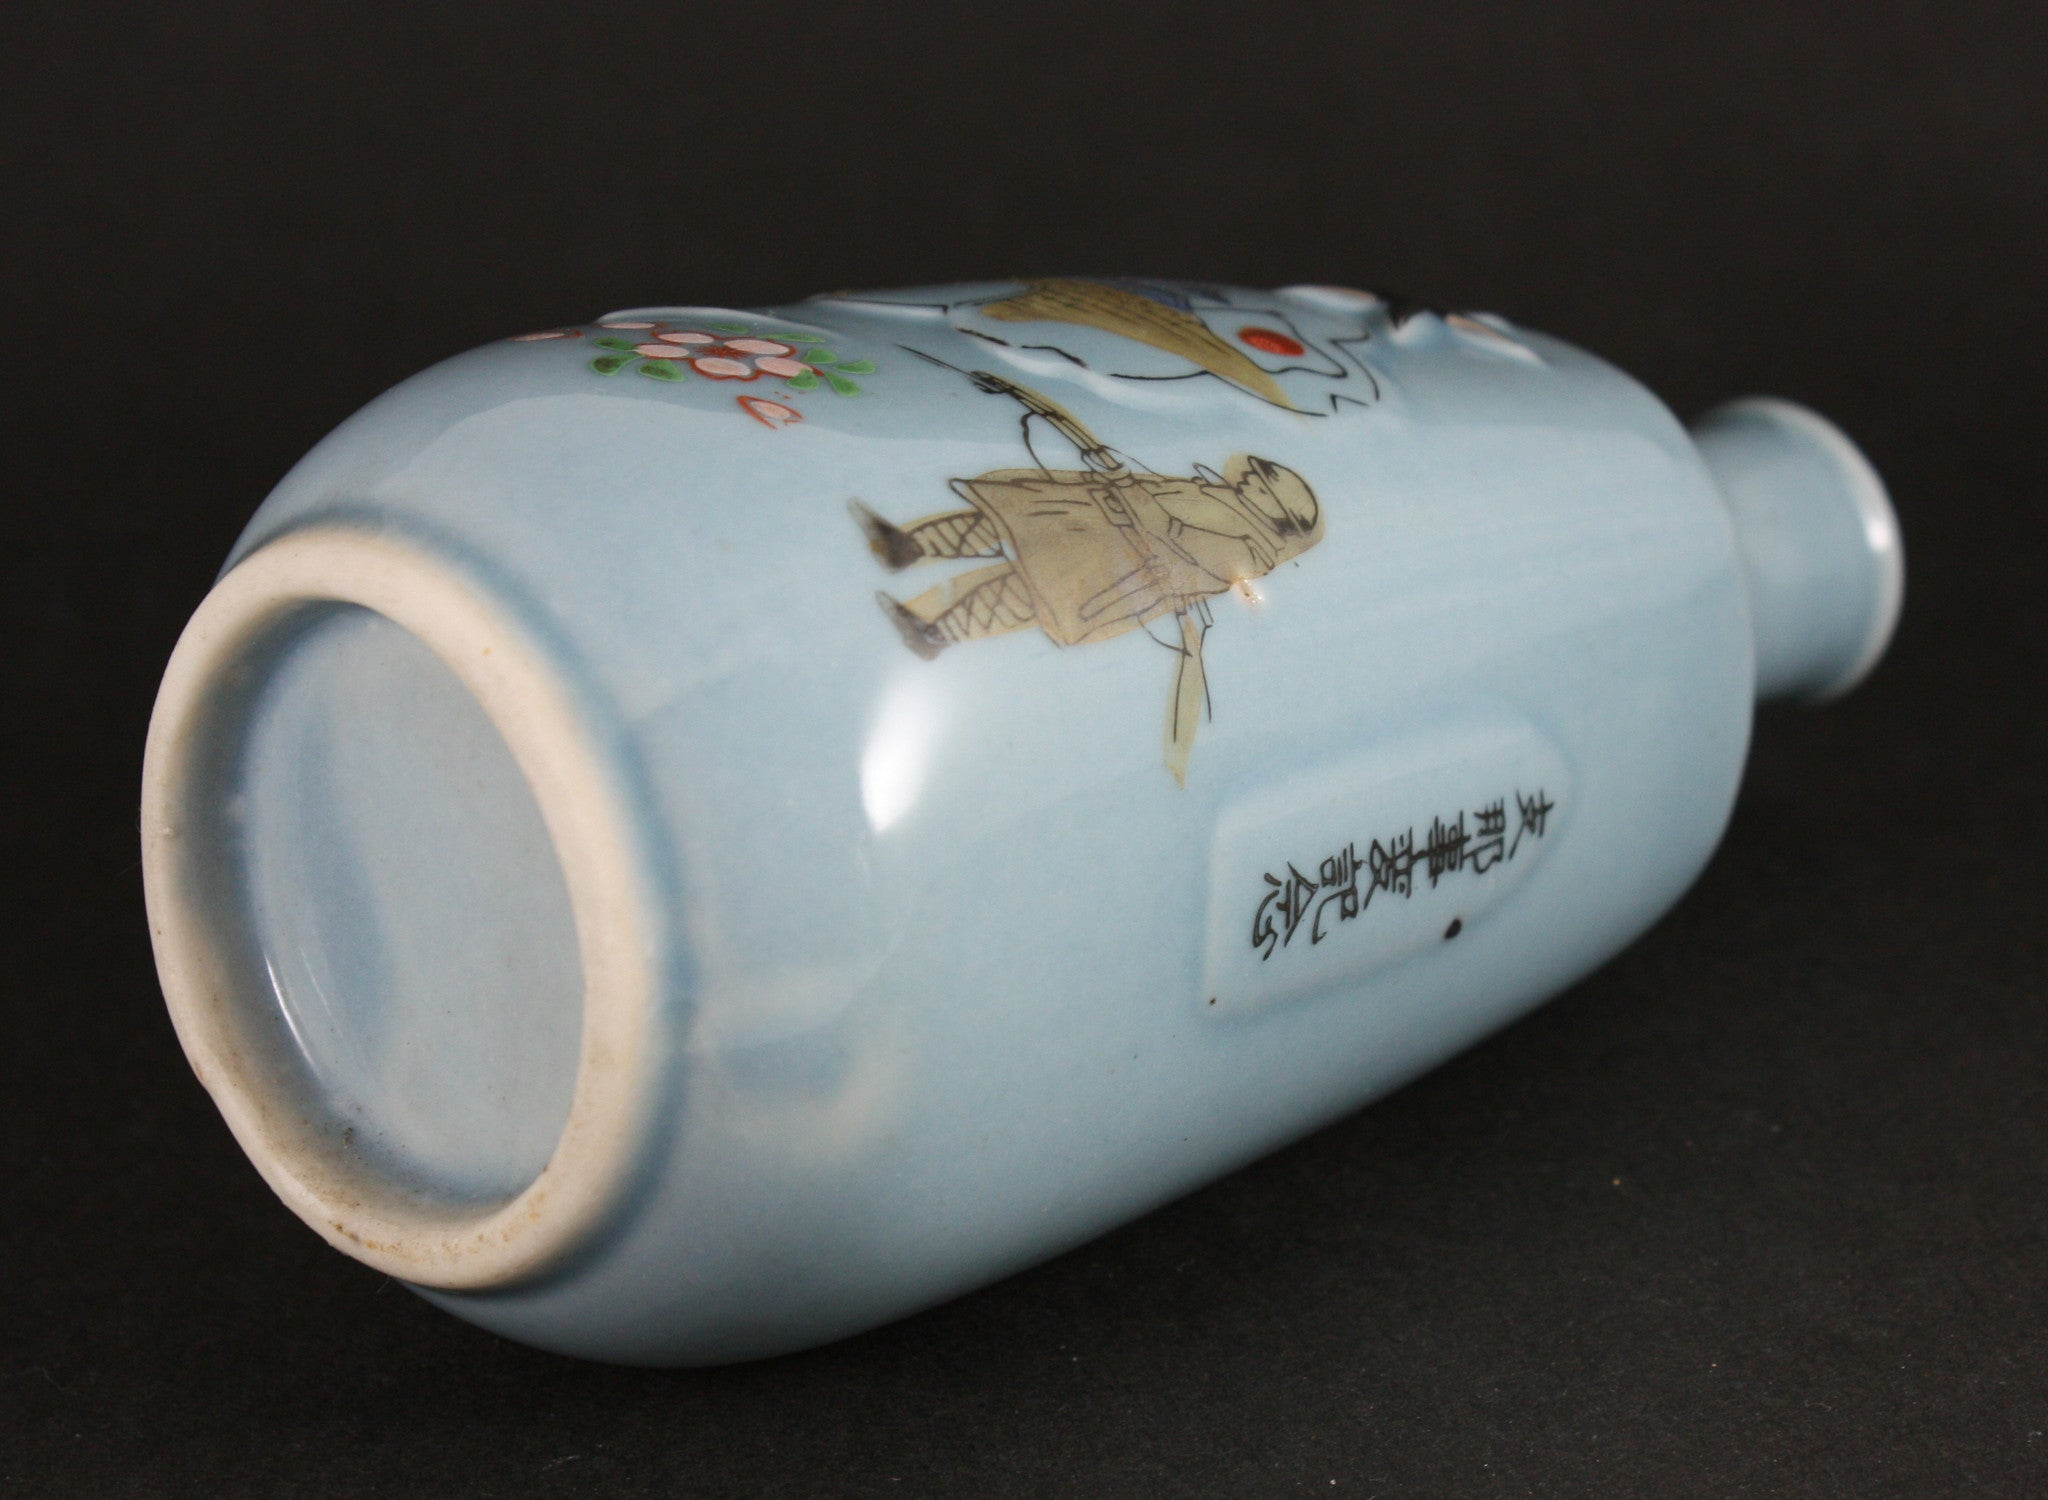 Antique Japanese Military Soldier Chinese City Gate Army Sake Bottle